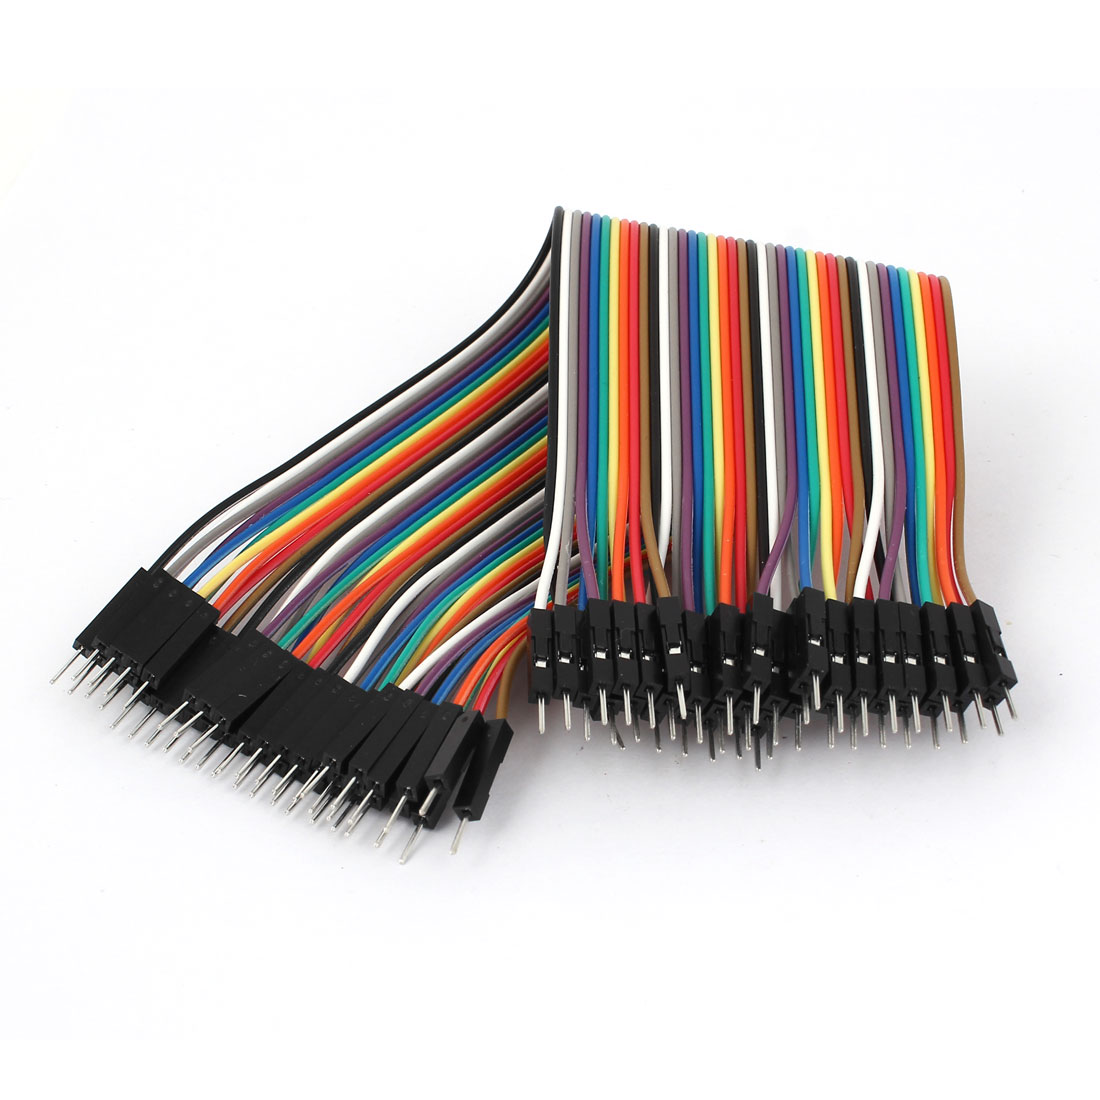 20cm 40pin Male to Male 2.54mm 1P-1P Jumper Wire Rainbow Flat Cable for